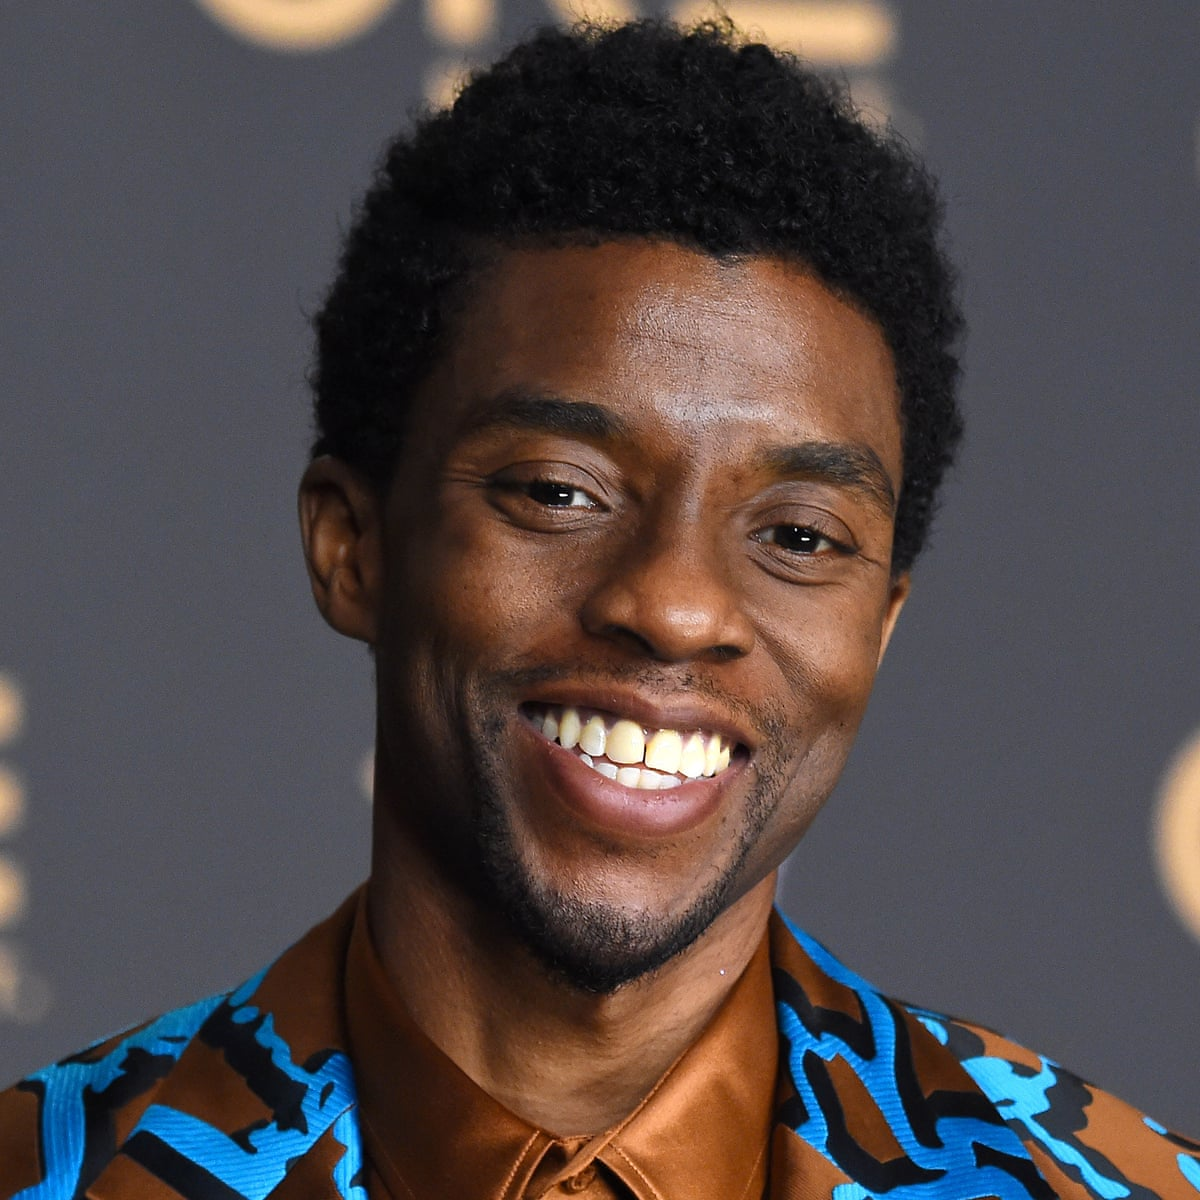 Chadwick Boseman Black Panther Star Dies Of Cancer Aged 43 Film The Guardian